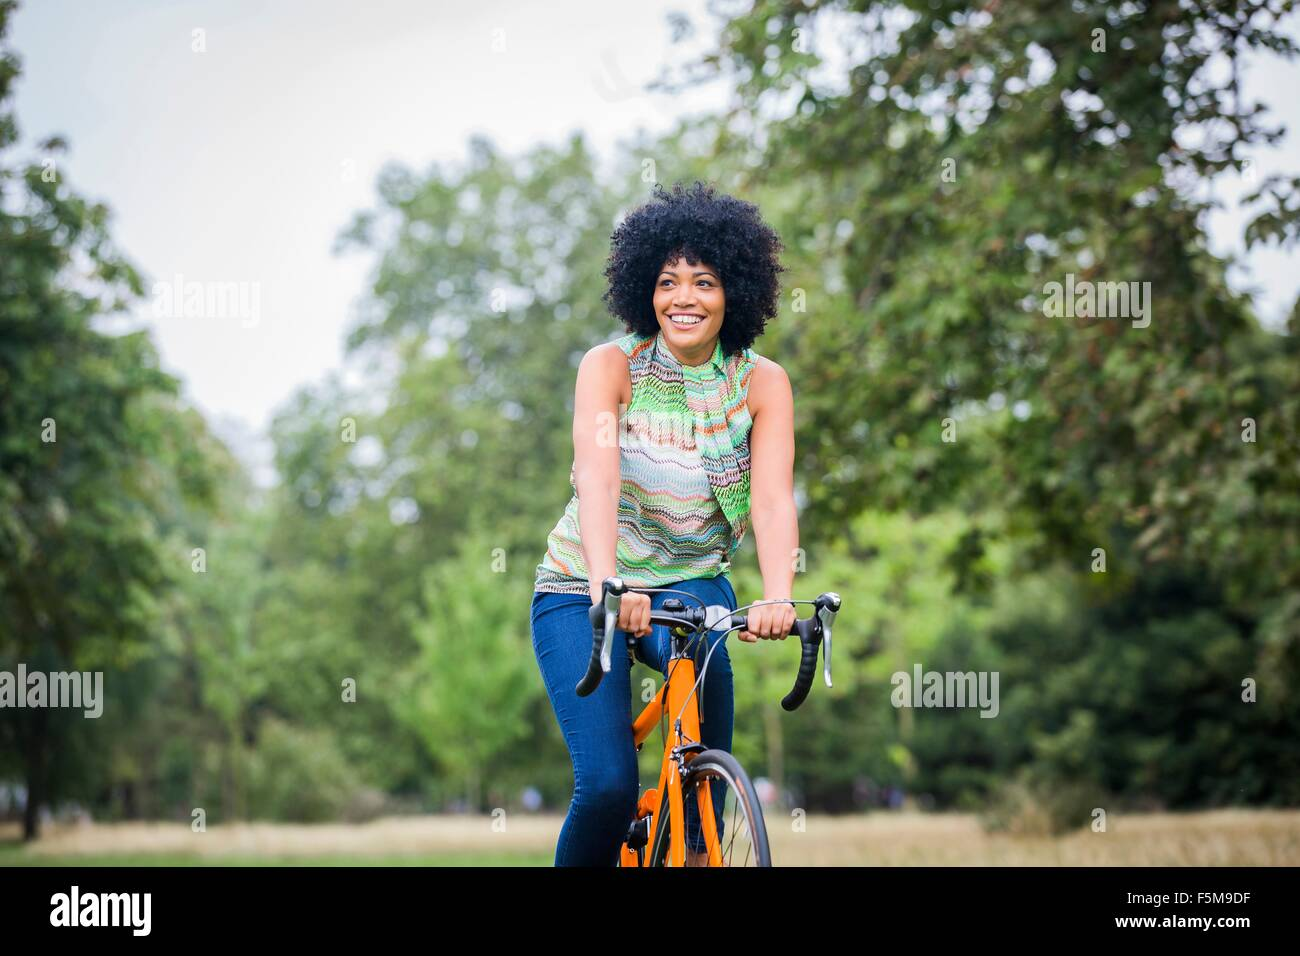 Front view of mature woman with afro riding bicycle looking away smiling - Stock Image